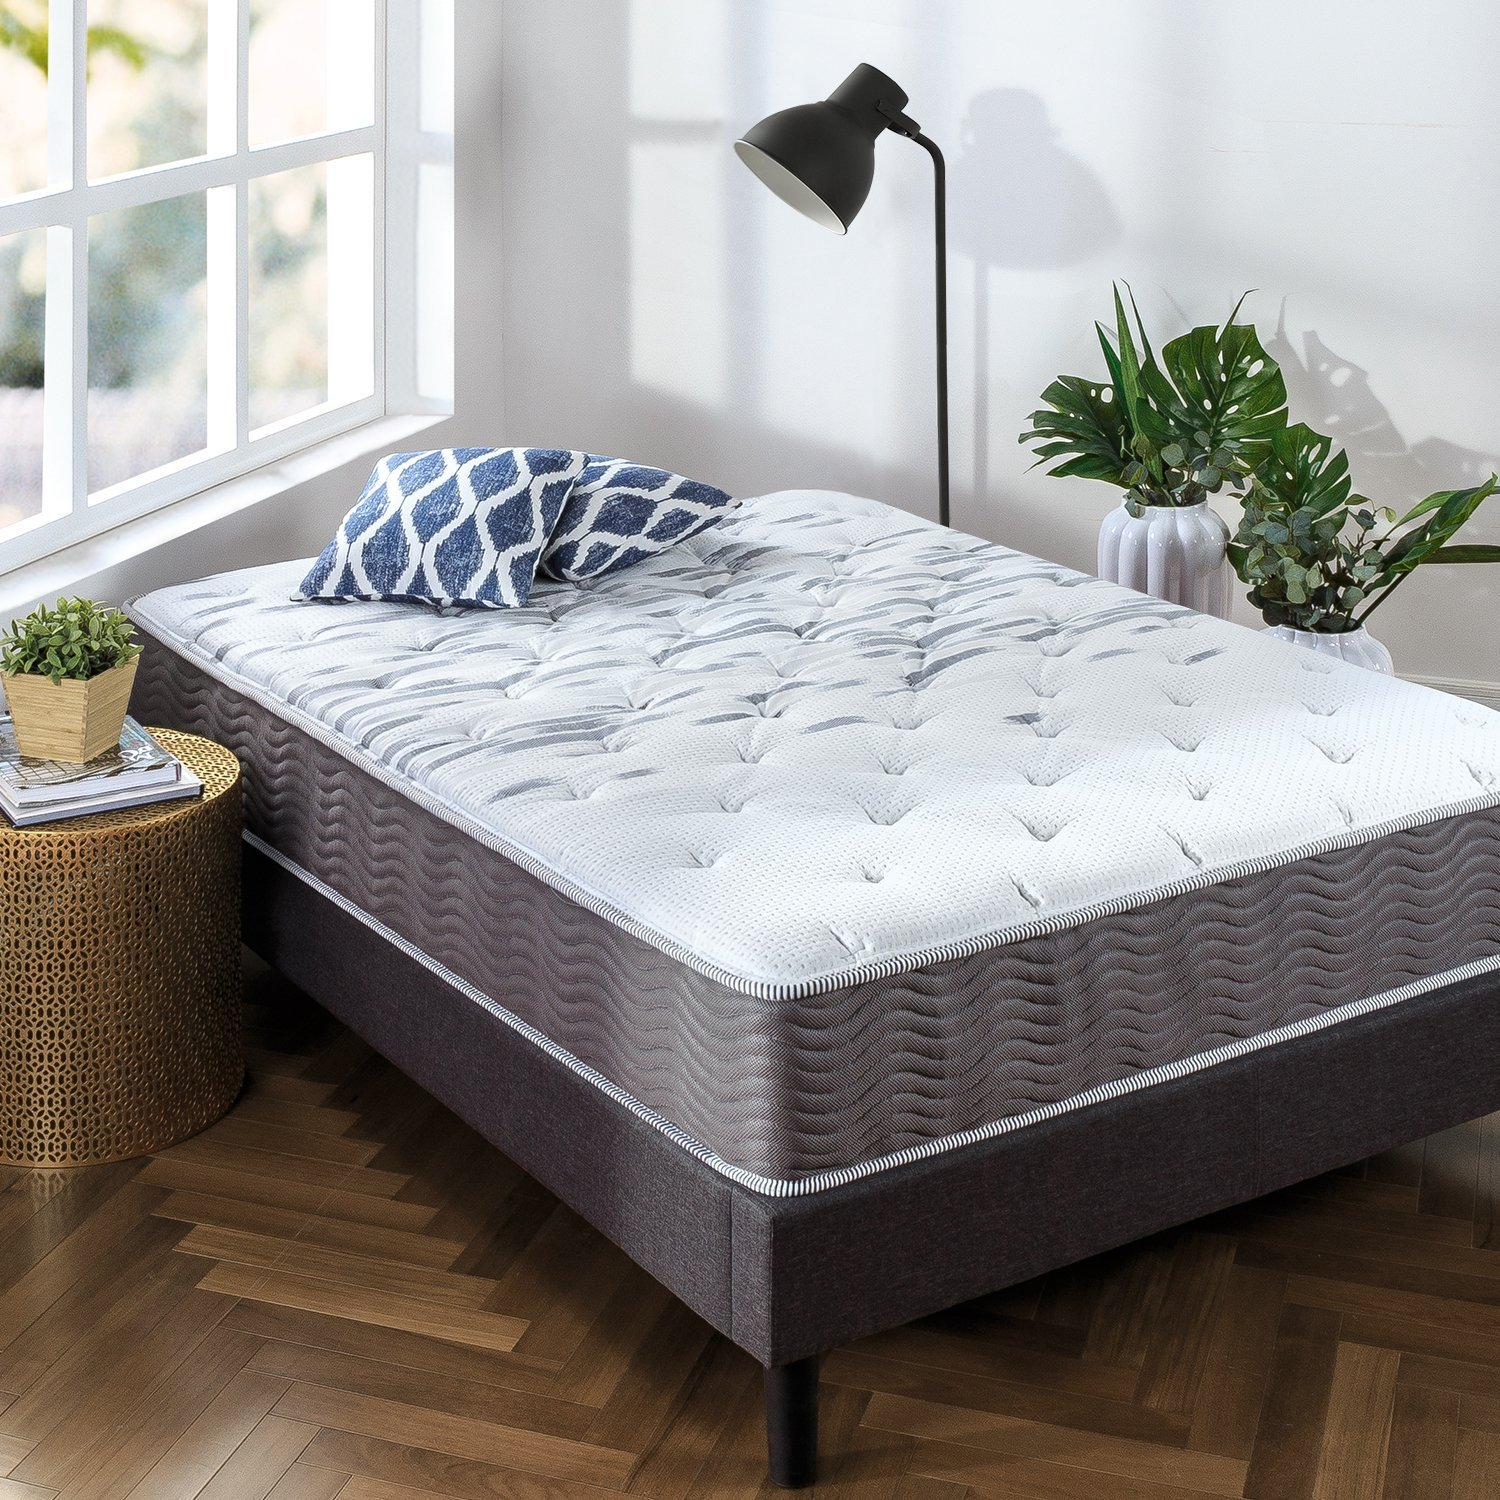 Zinus Best Innerspring Mattress Review by www.snoremagazine.com